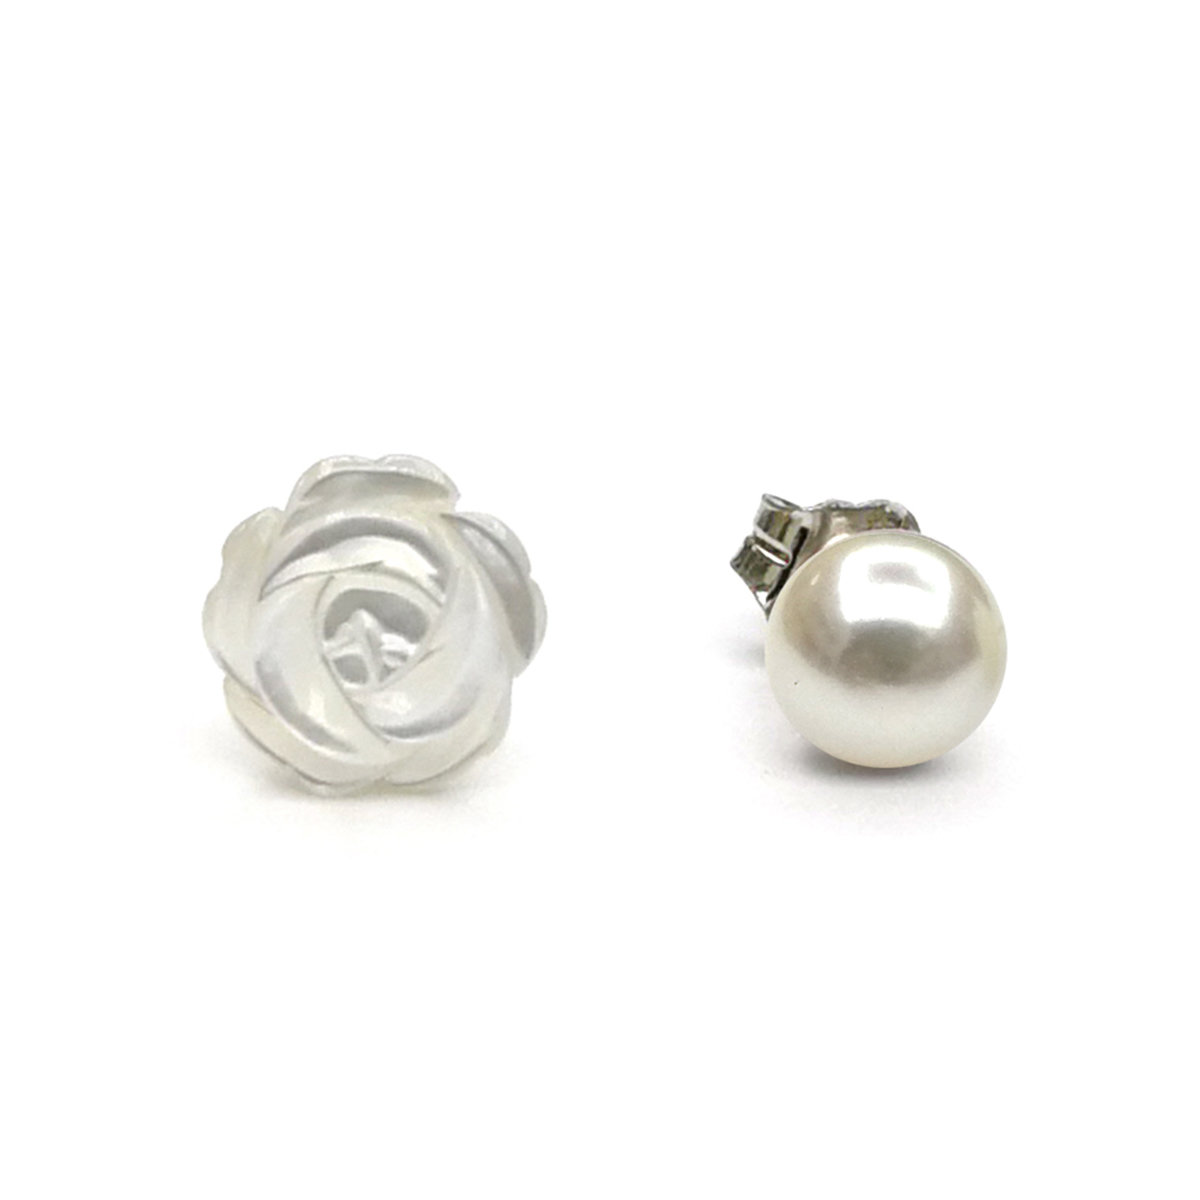 5-6mm Cultured fresh water pearl with MOP silver earring